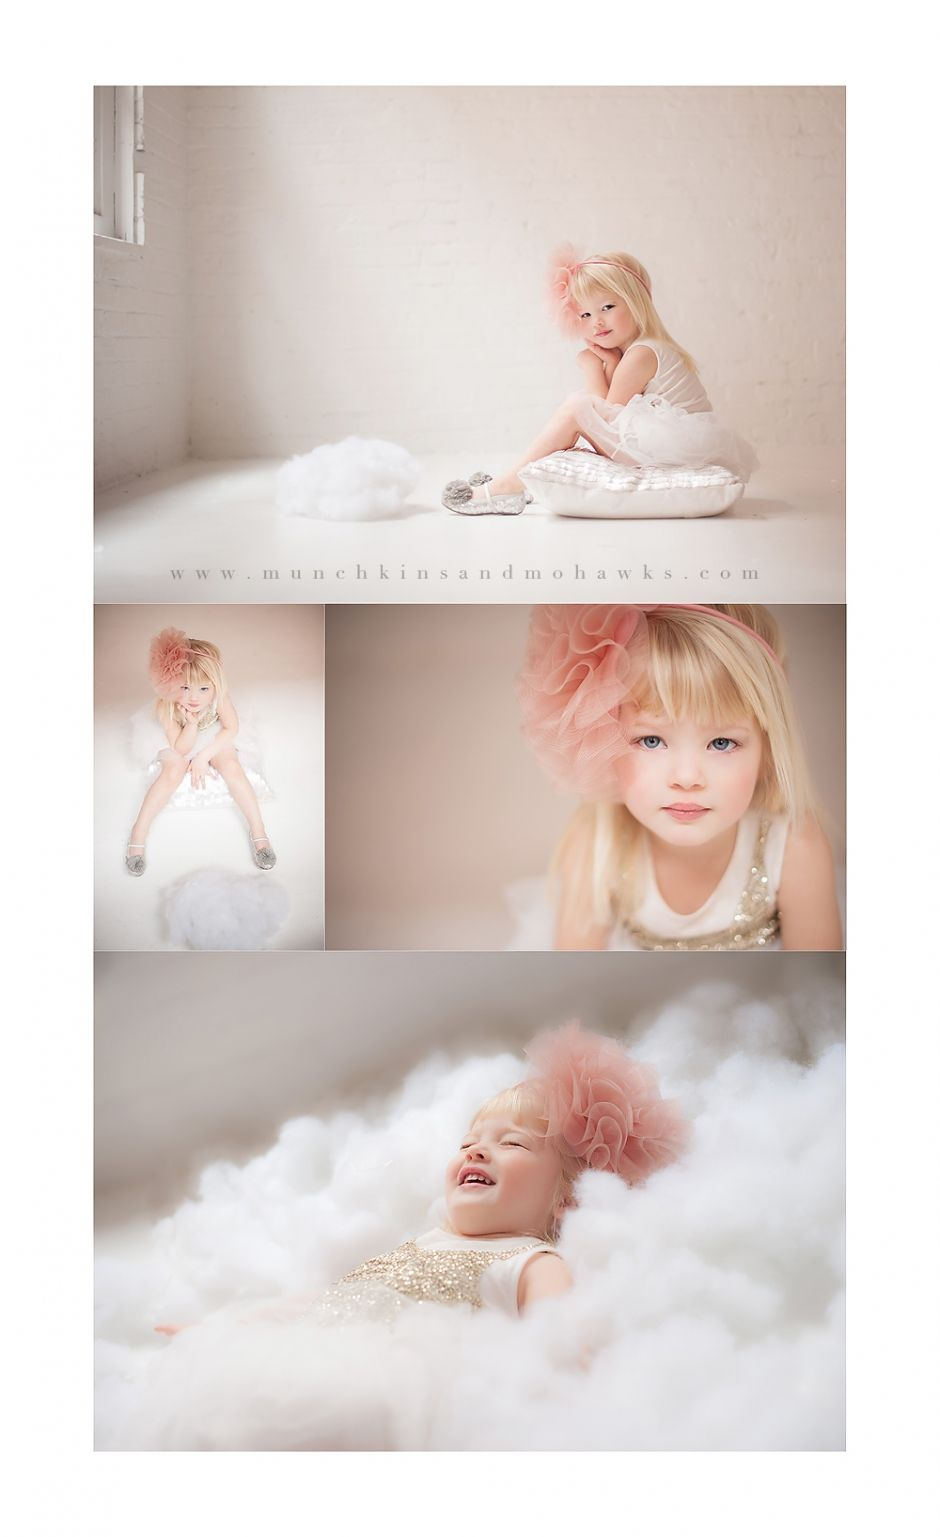 A cloudy day professional commercial child photographer munchkins and mohawks photography portraits by tiffany amber